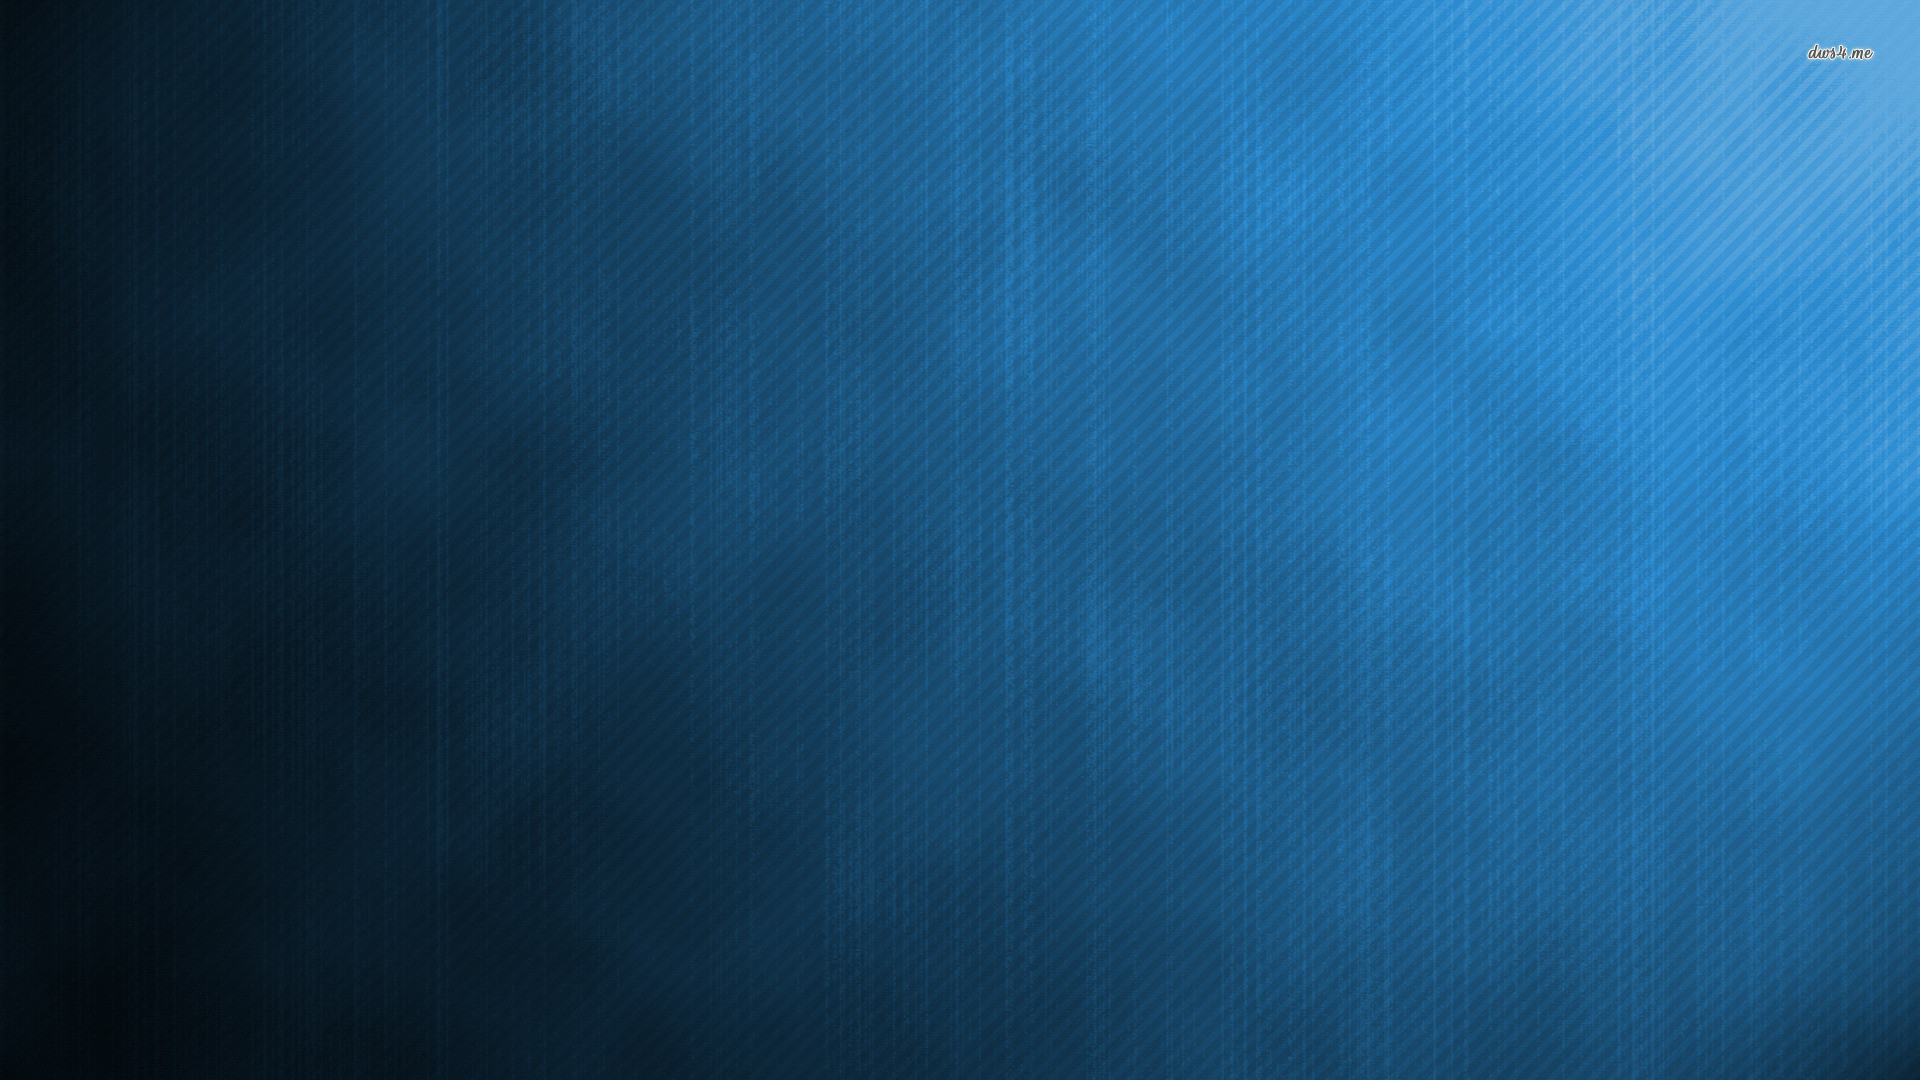 faded lines wallpaper abstract wallpapers blue faded lines wallpaper .